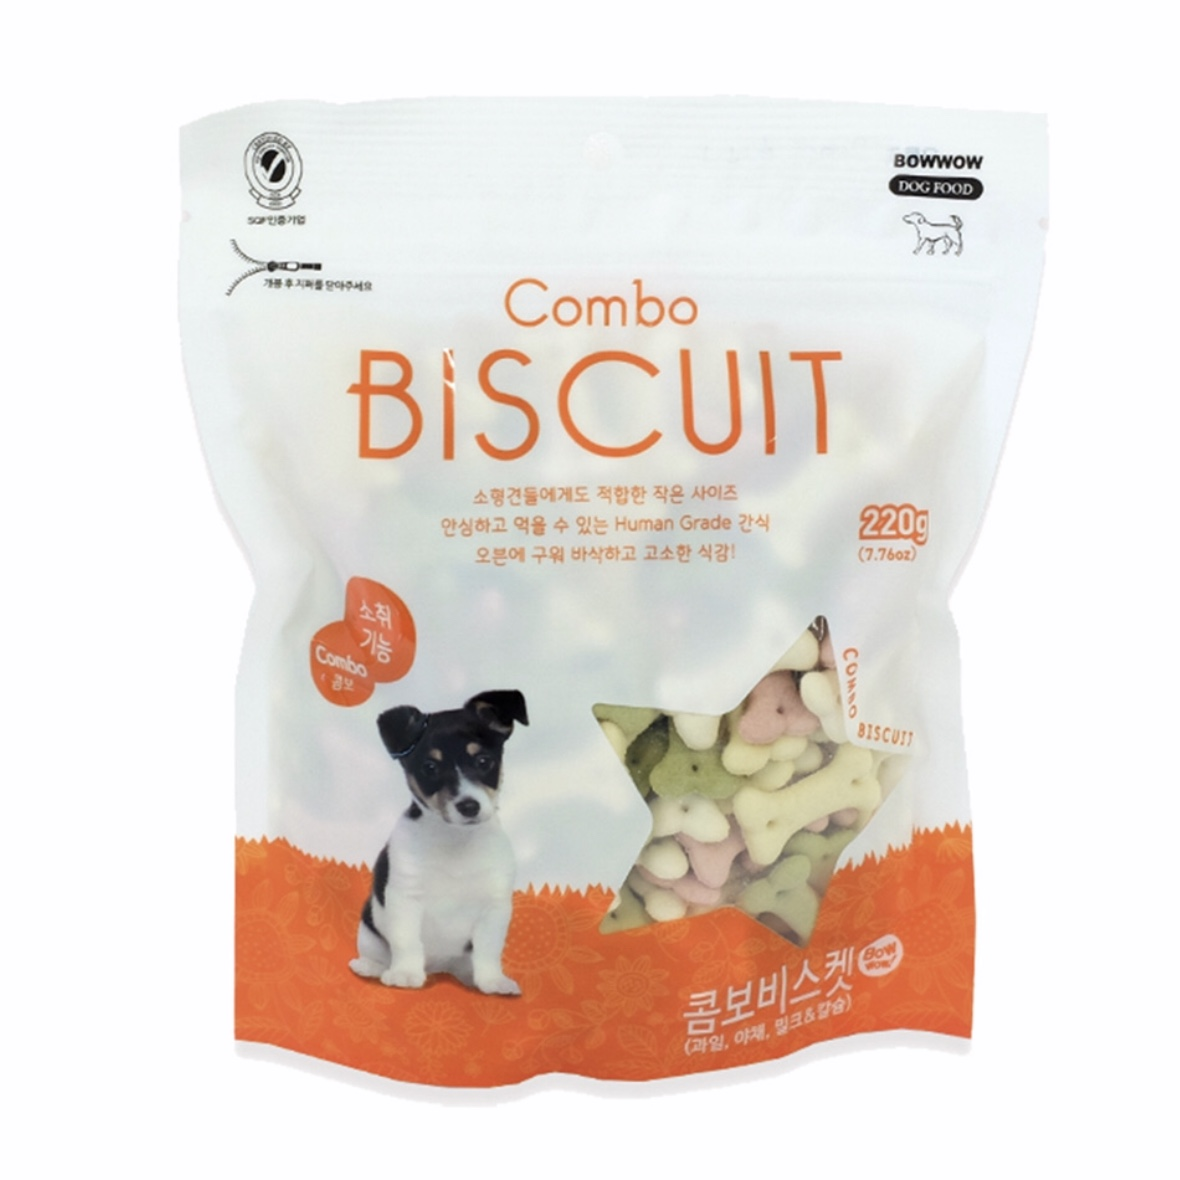 Bánh Qui Biscuit Hỗn Hợp Bow Wow 220g